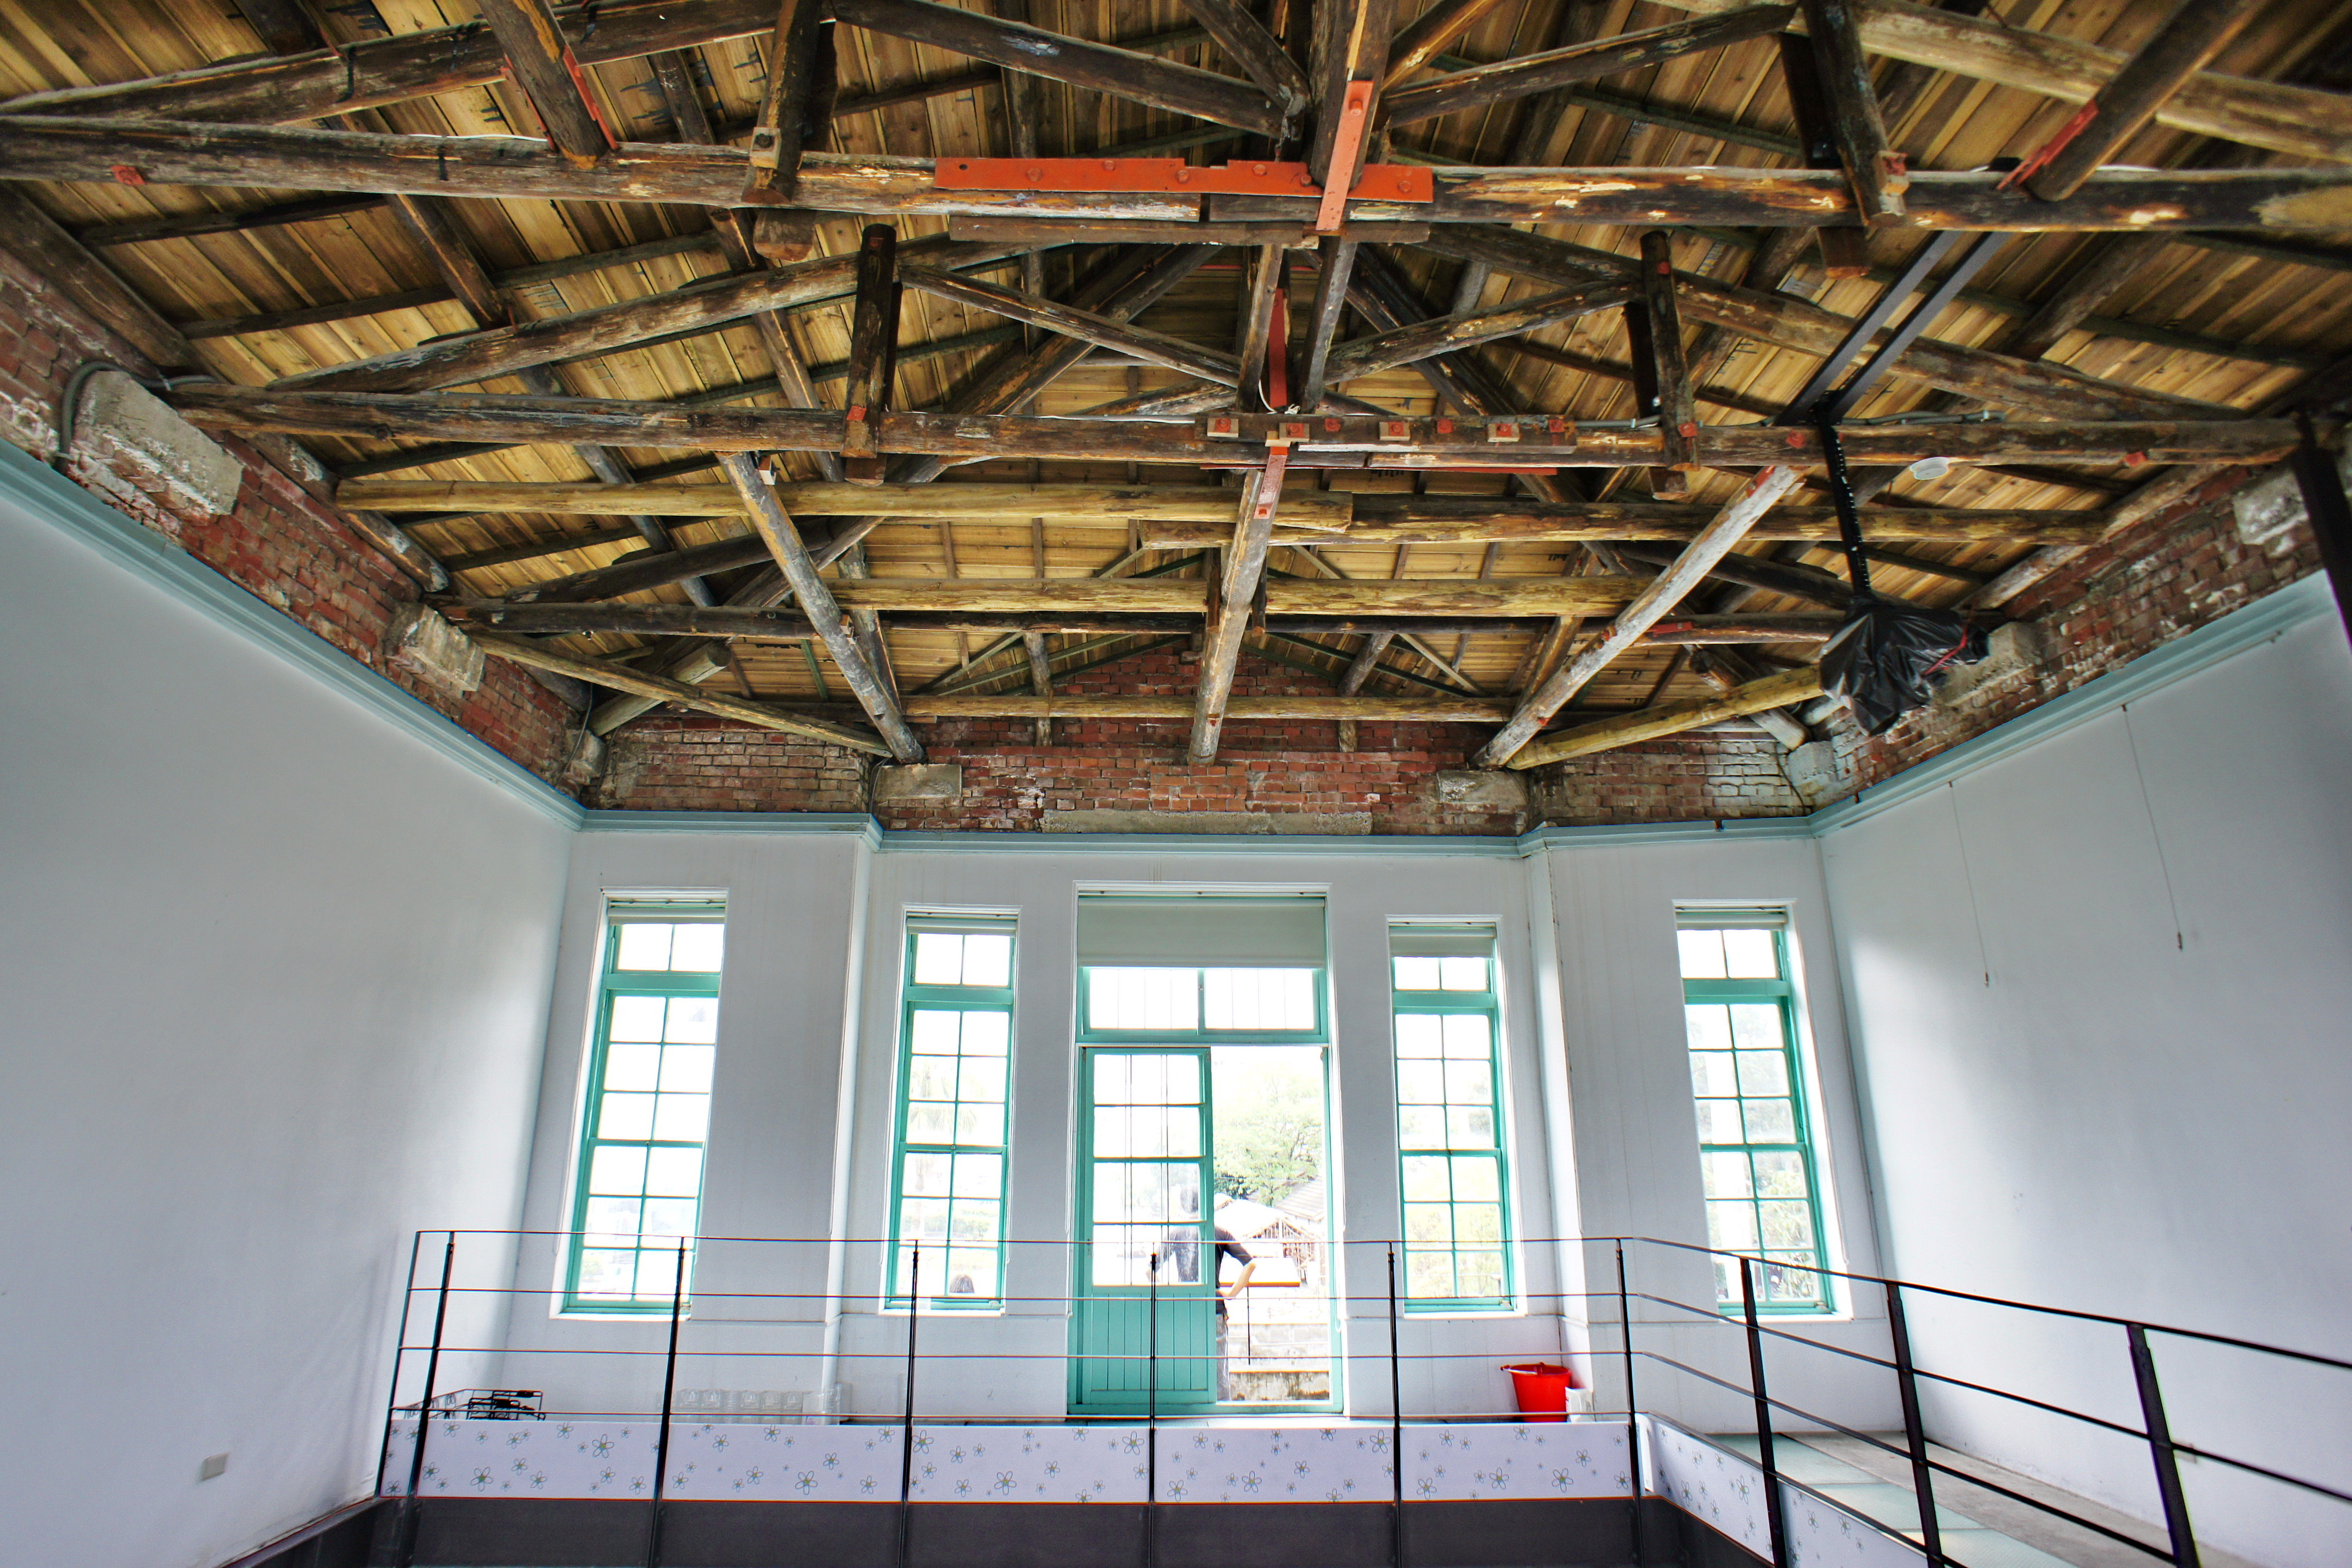 Yunlin Taiwan  city pictures gallery : Description The Memorial Assembly Hall in Douliou, Yunlin Taiwan